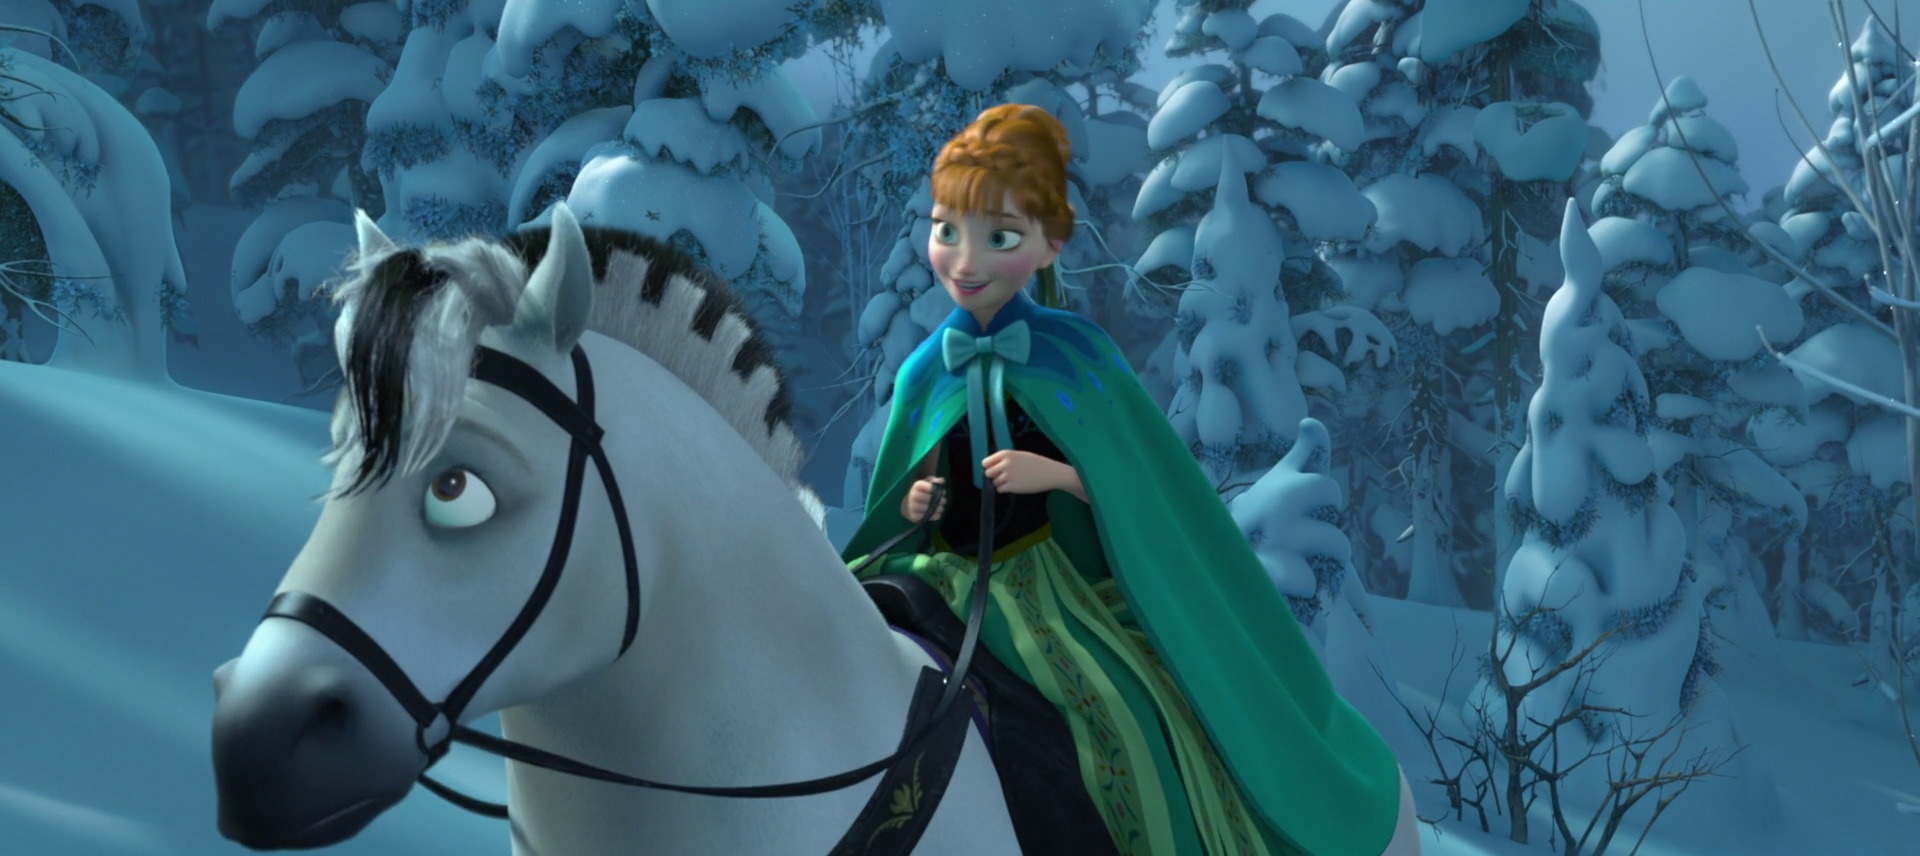 fjord horse (anna's, in the movie frozen) | fairytales, myths and